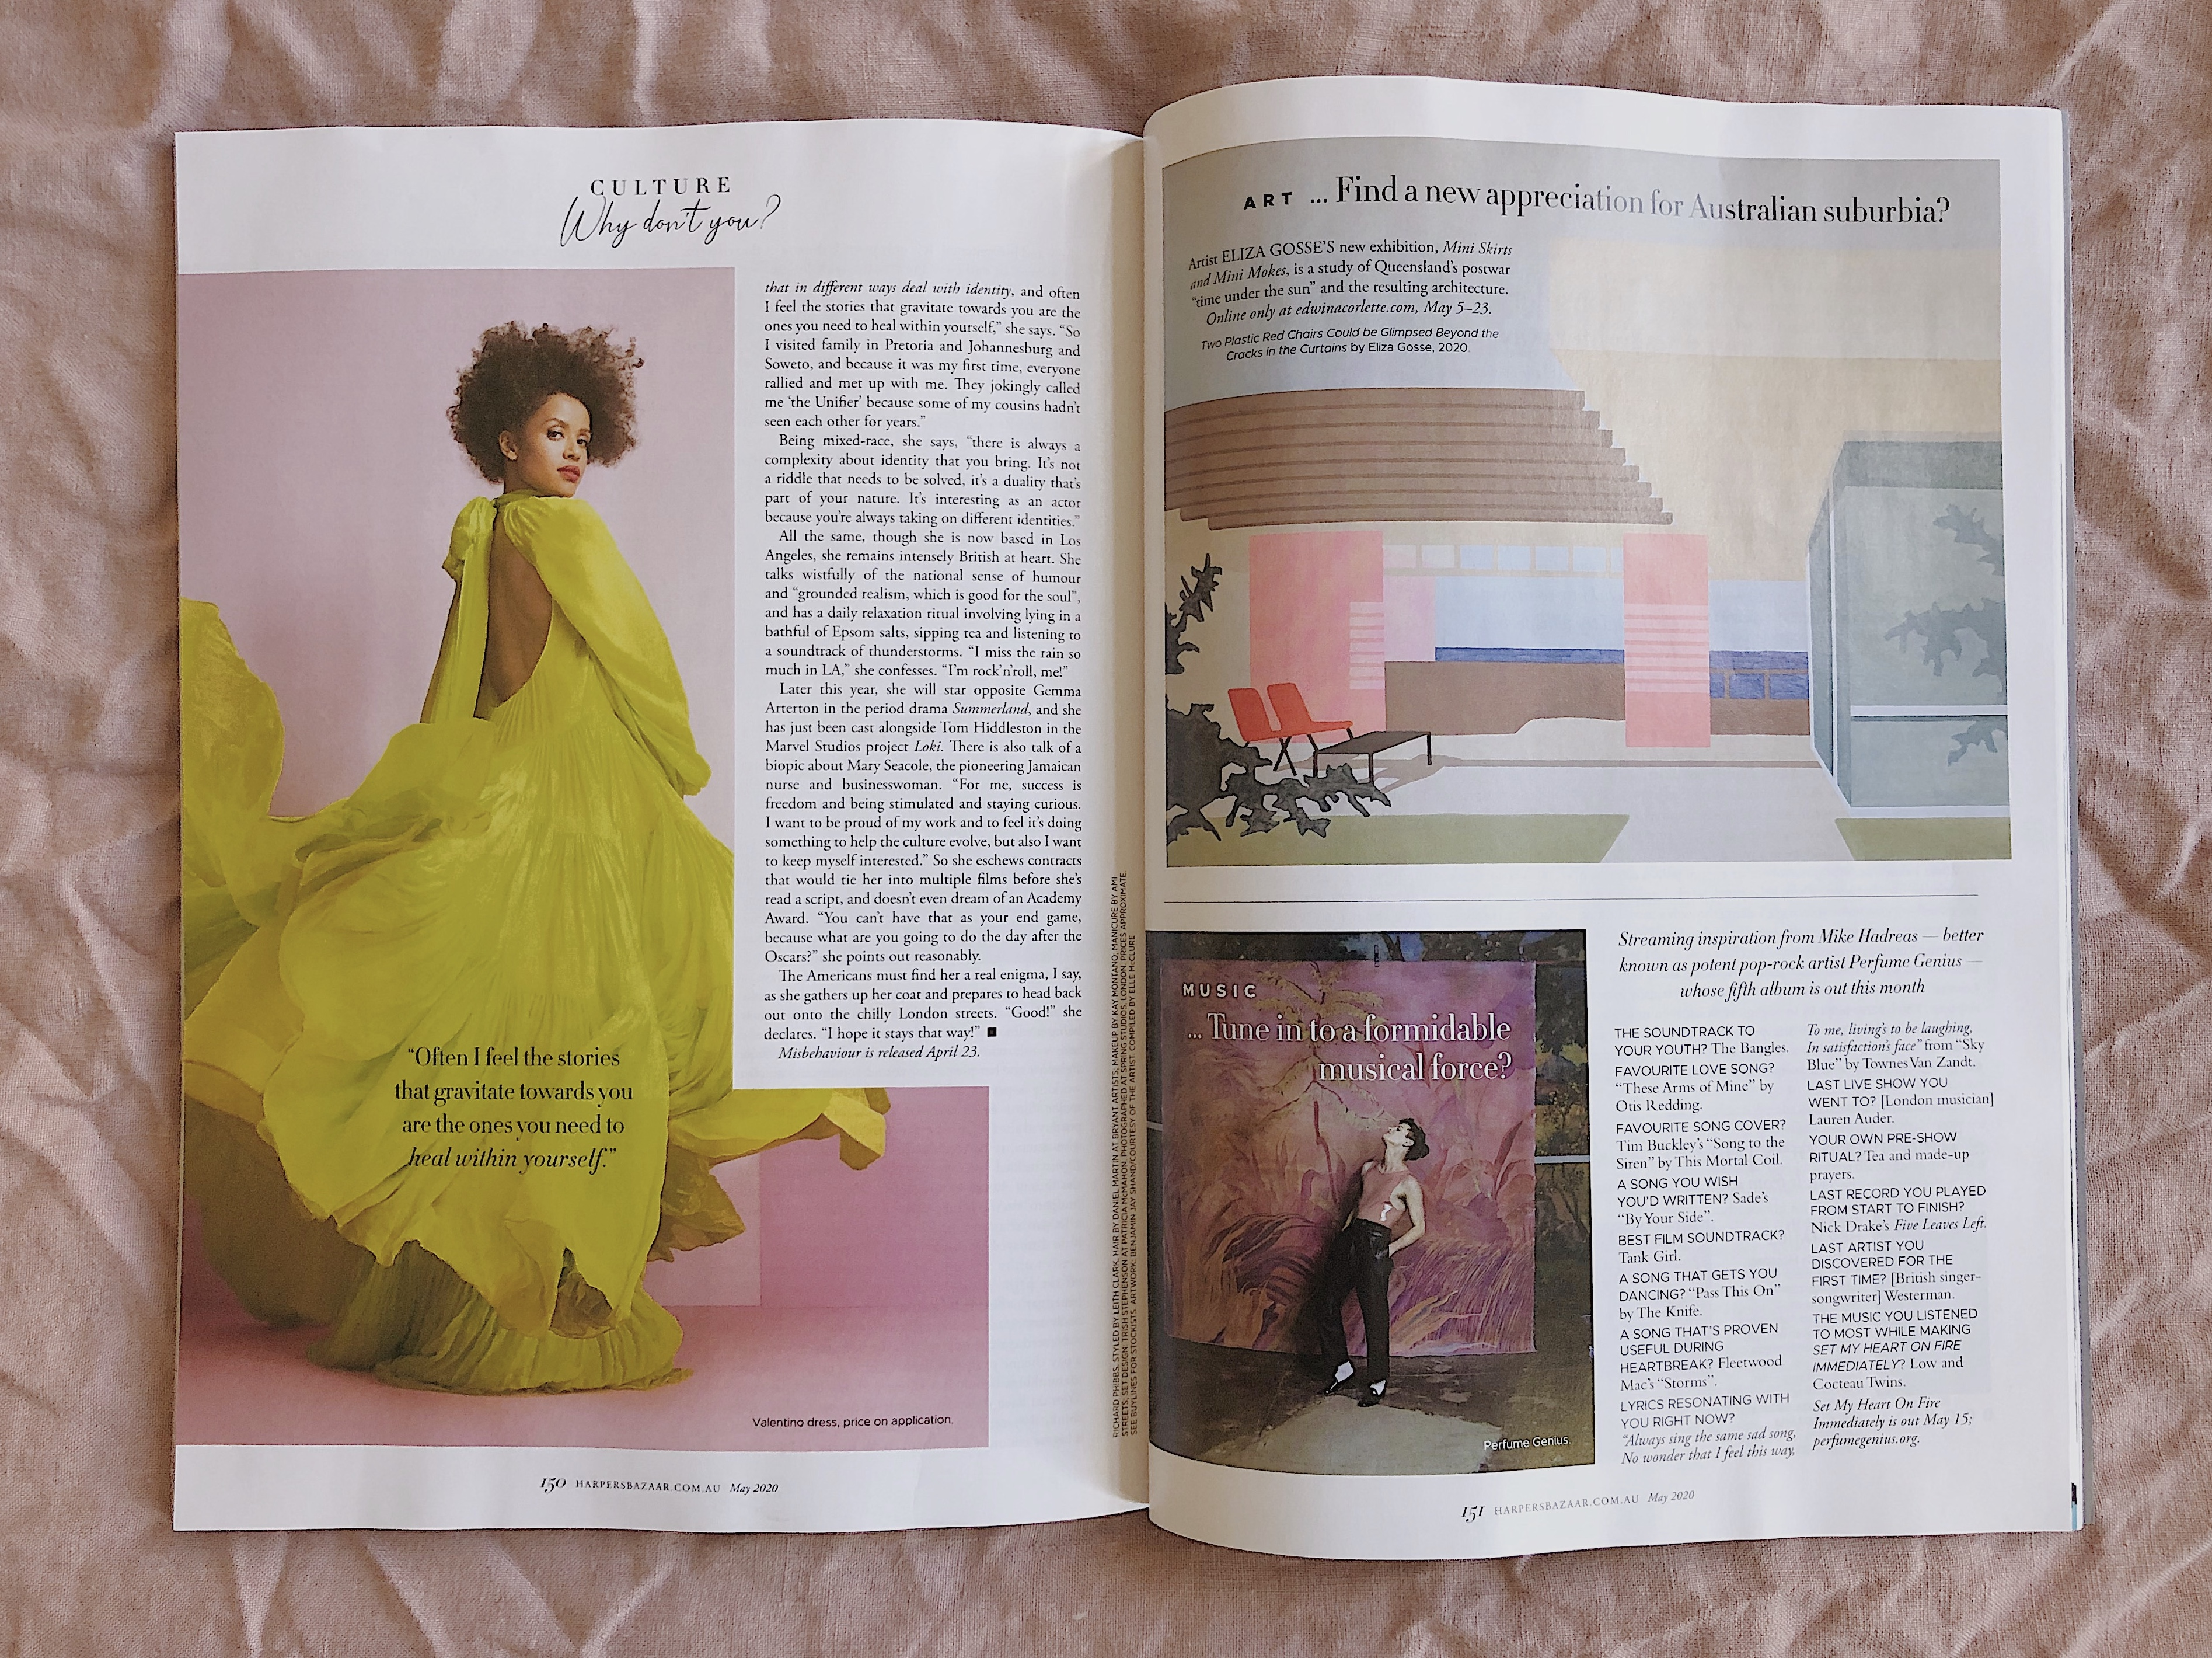 Featured in Harpers Baazar